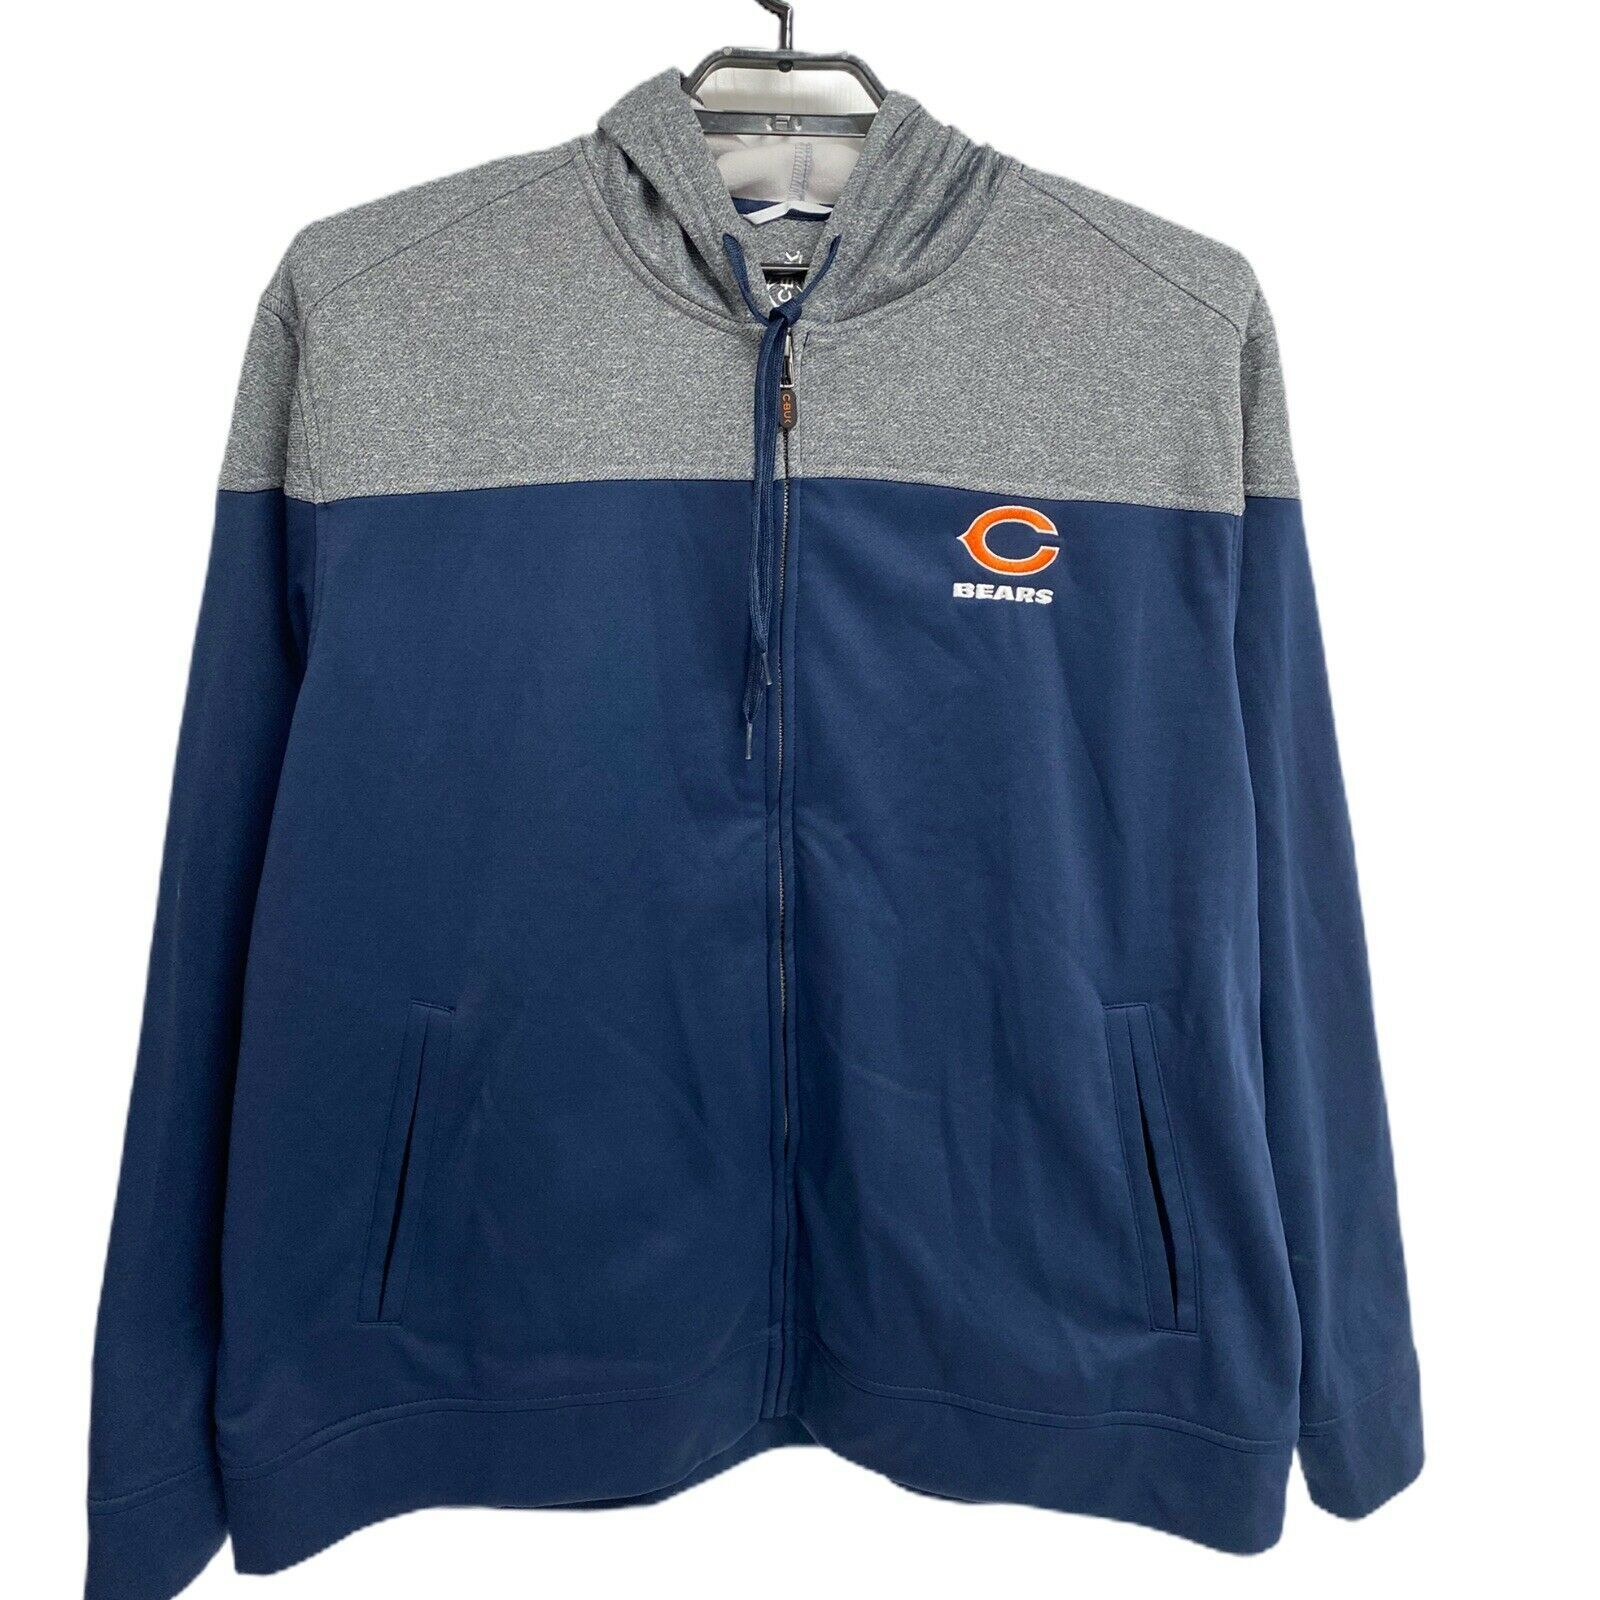 Primary image for C-Buk By Cutter & Buck Full Zip Jacket NFL Chicago Bears XXL